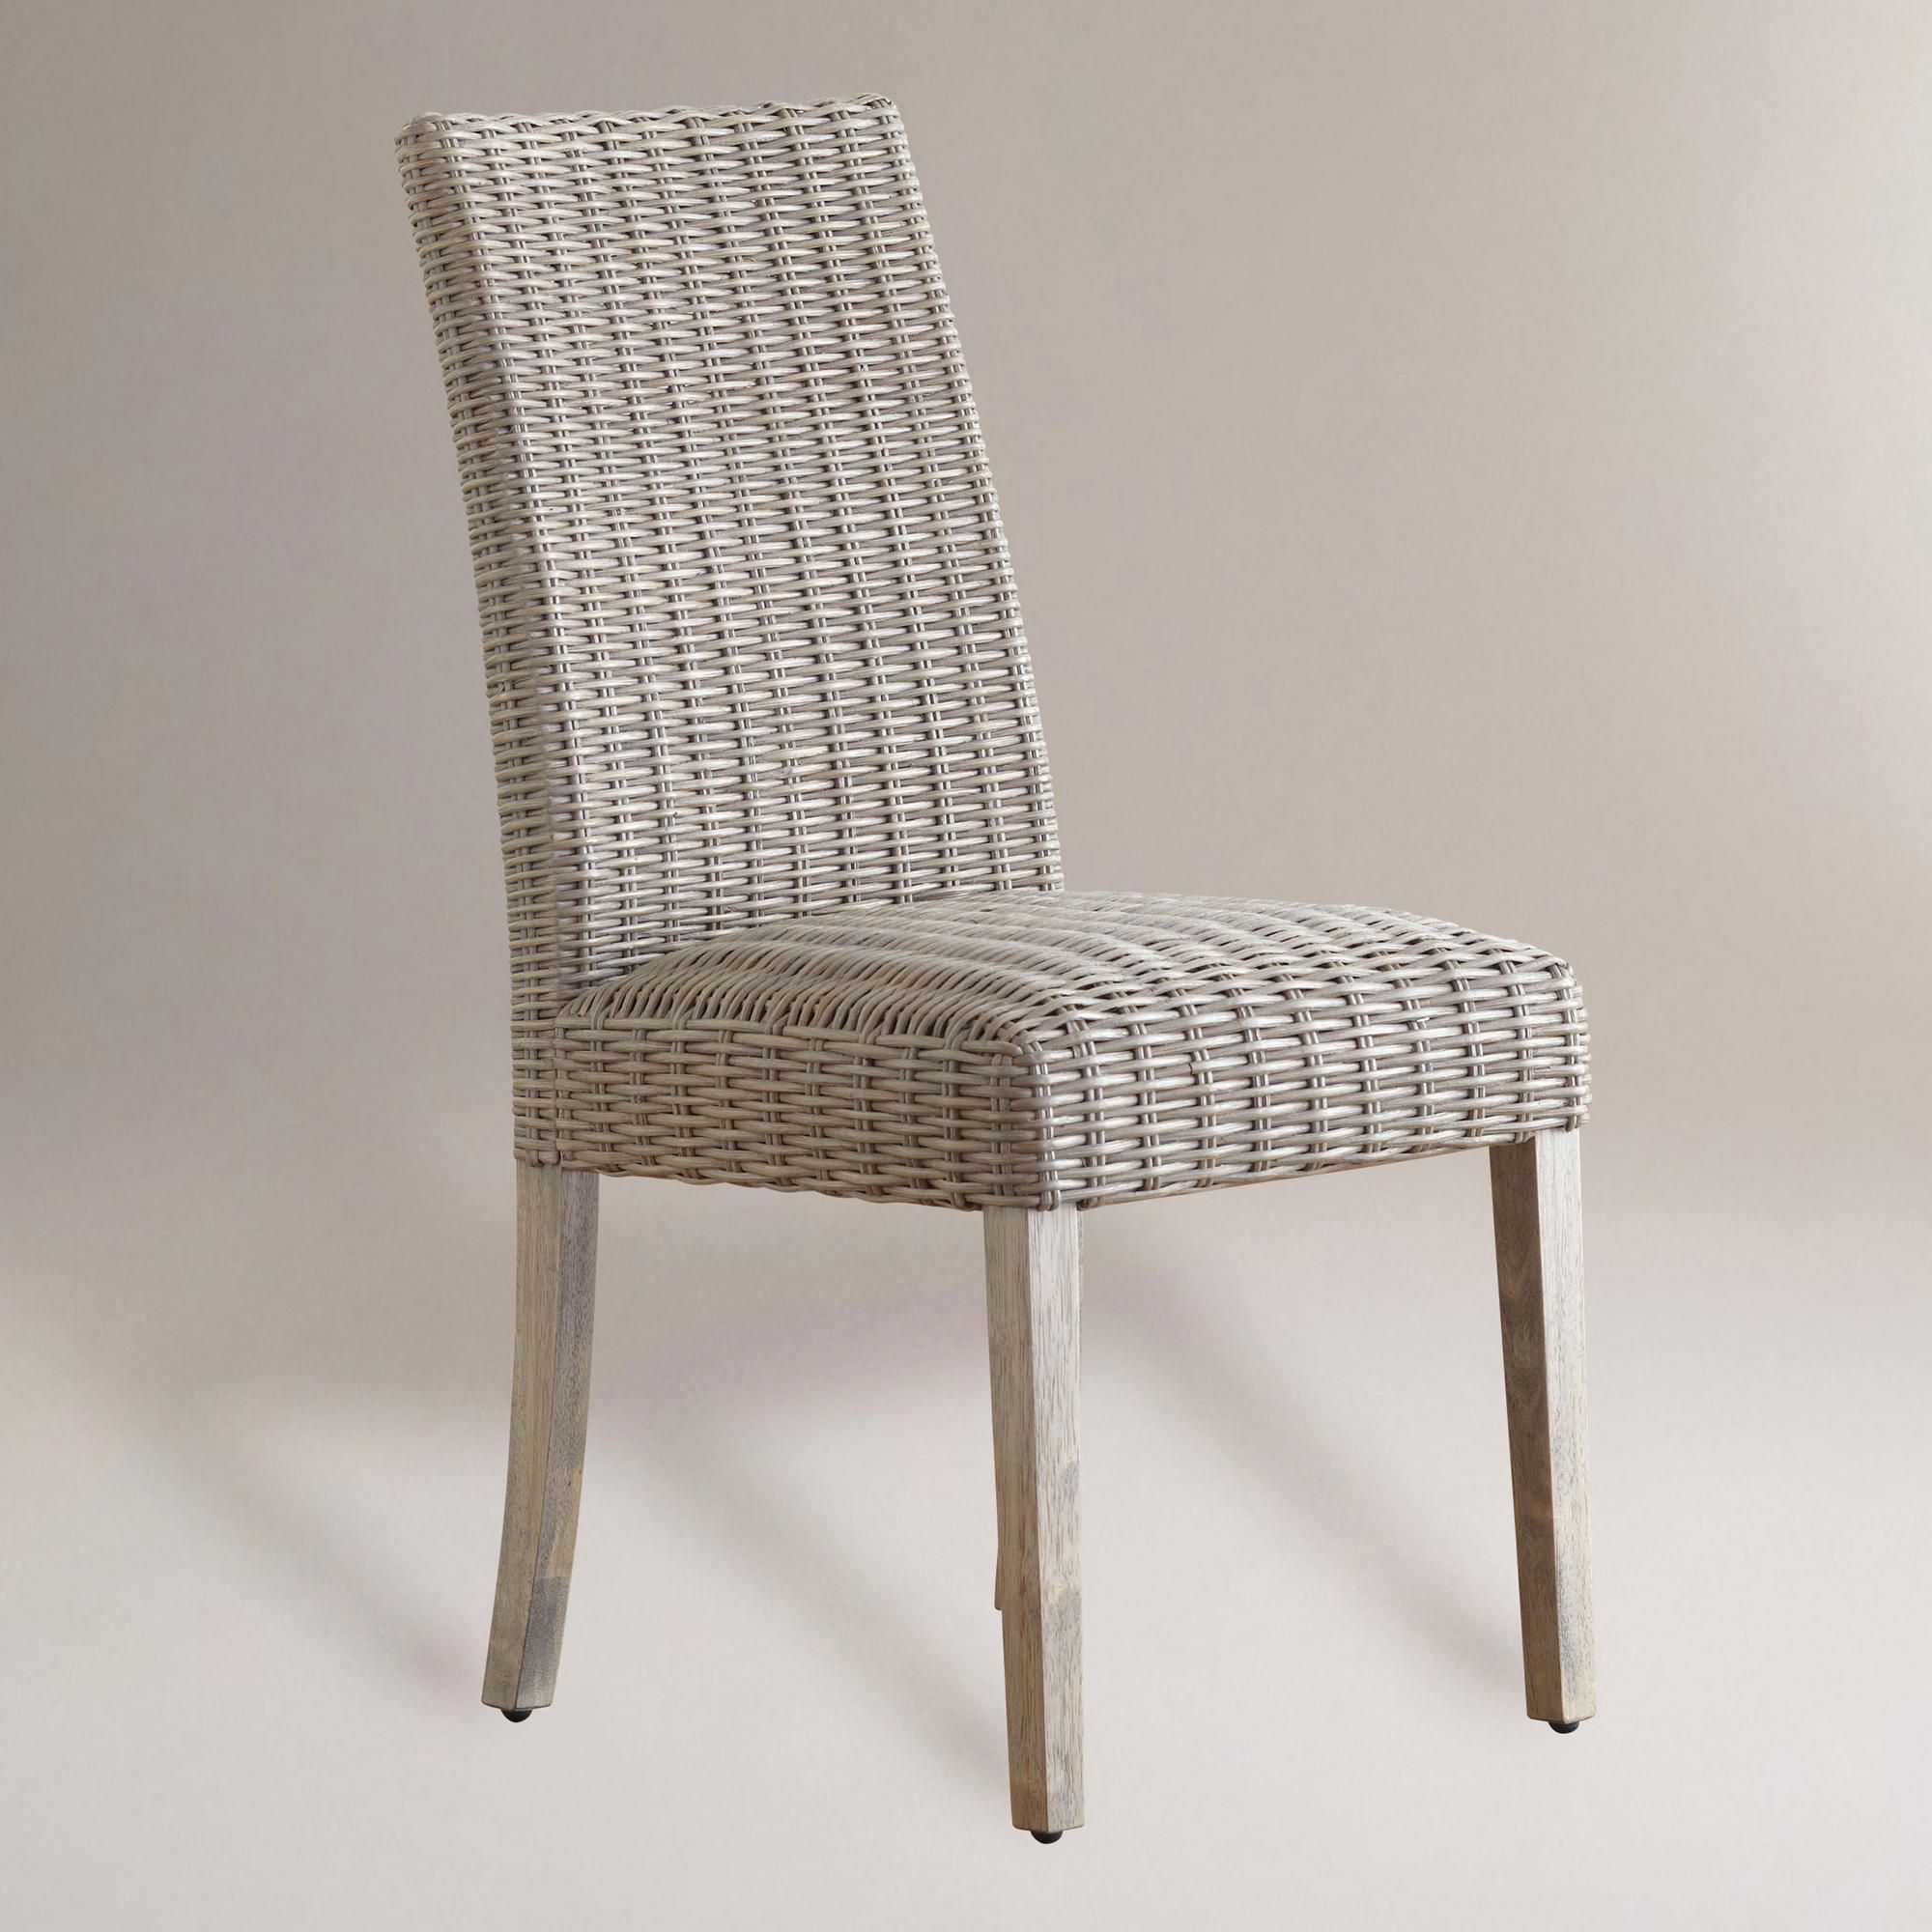 Kooboo Side Chair | World Market $65 extra dining chairs